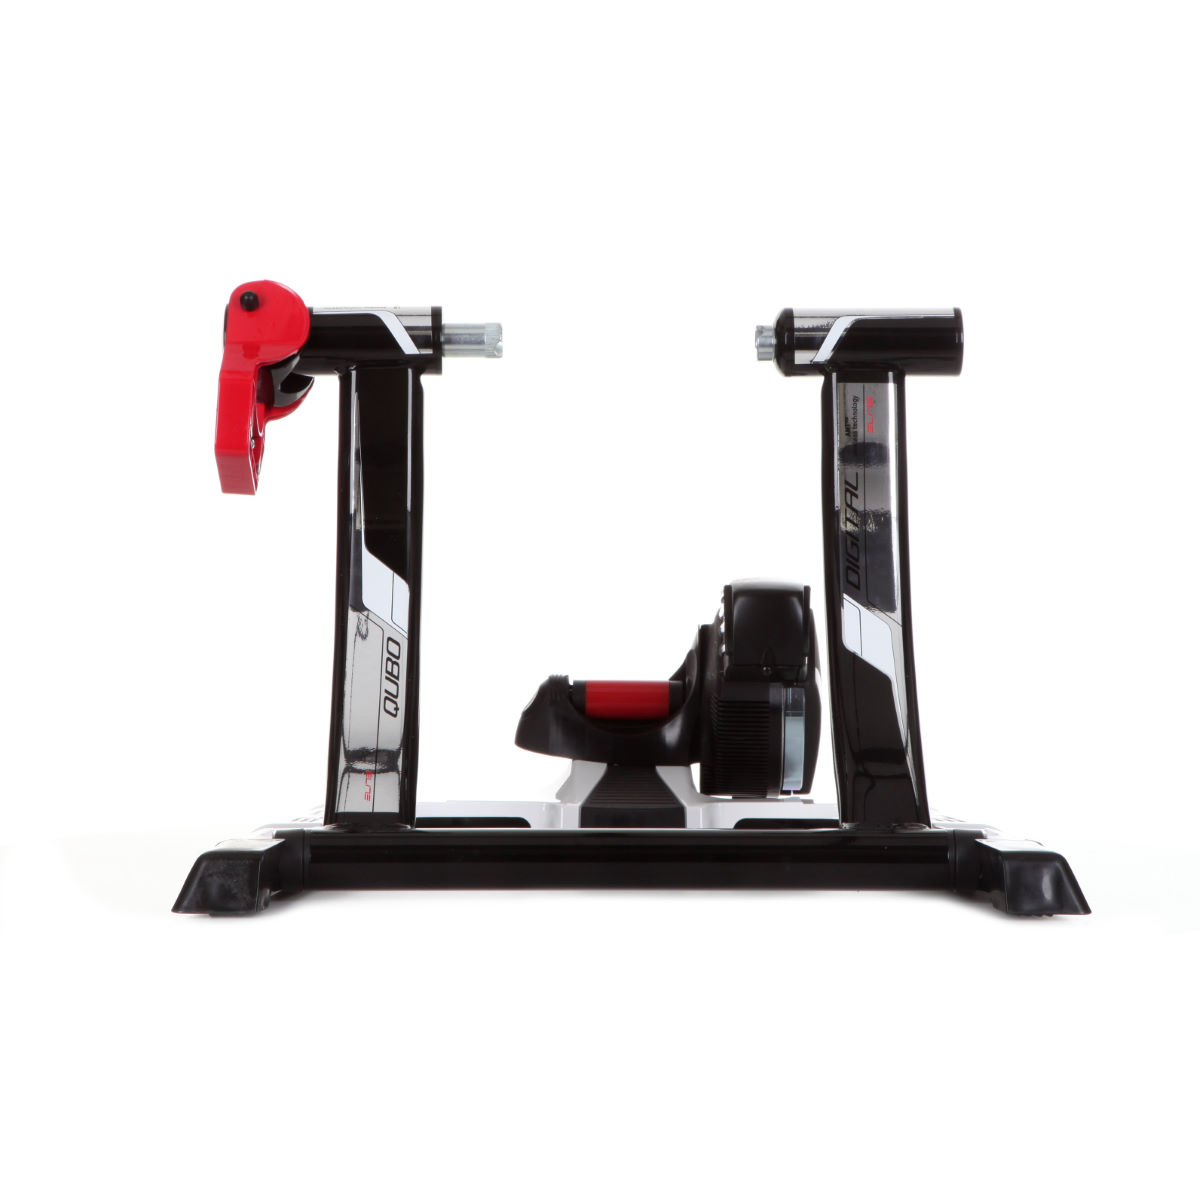 Home Trainer Elite Qubo Digital (sans fil) - Taille unique Noir/Blanc Home Trainer et rouleaux